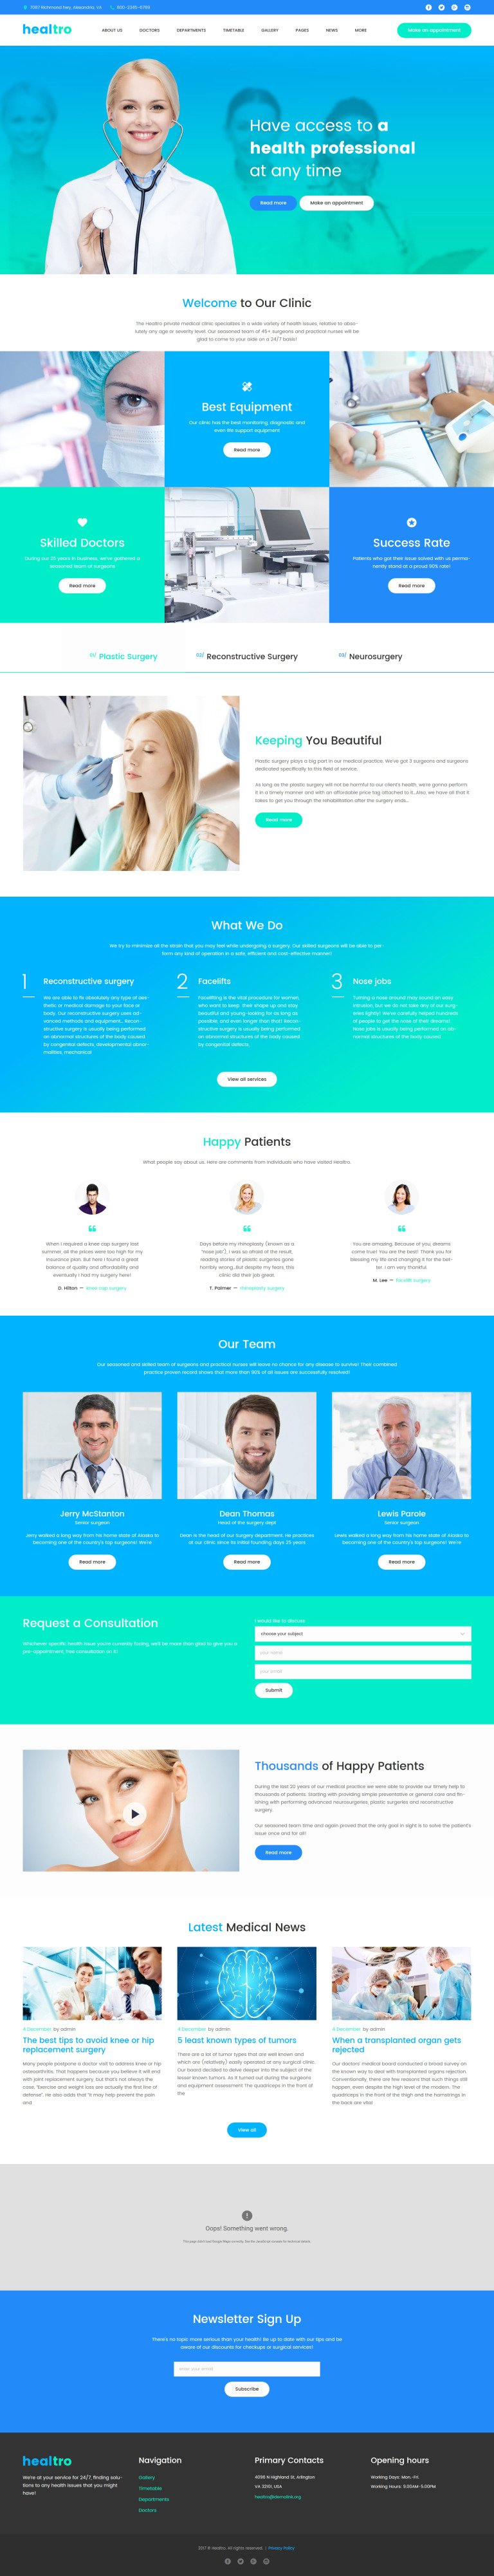 Healtro - Private Medical Clinic Responsive WordPress Theme New Screenshots BIG